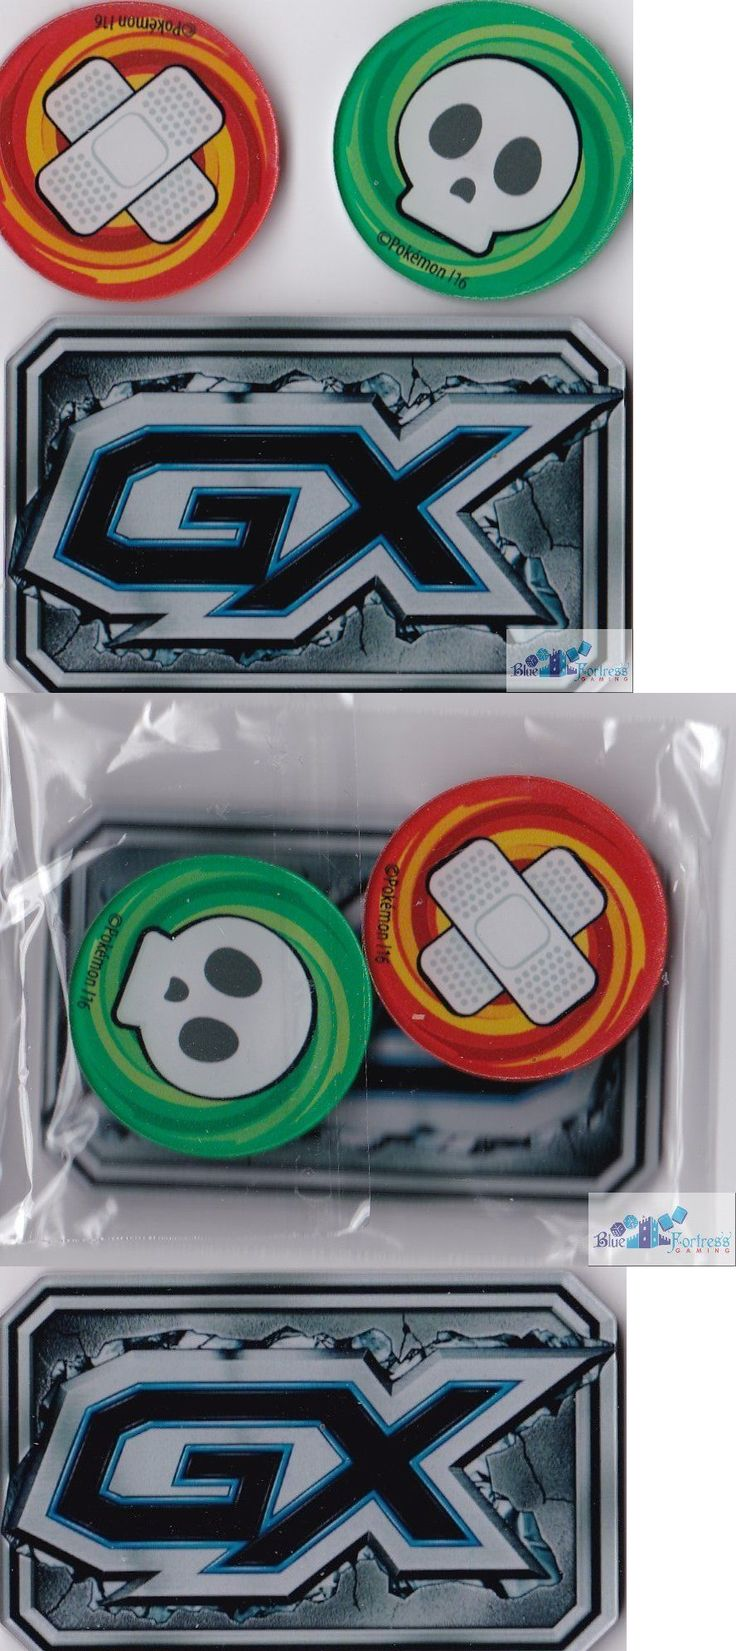 Accessories 2544: Gx, Poison And Burned Acrylic Counters Markers For Pokemon Tcg Cards Sealed New -> BUY IT NOW ONLY: $49.99 on eBay!